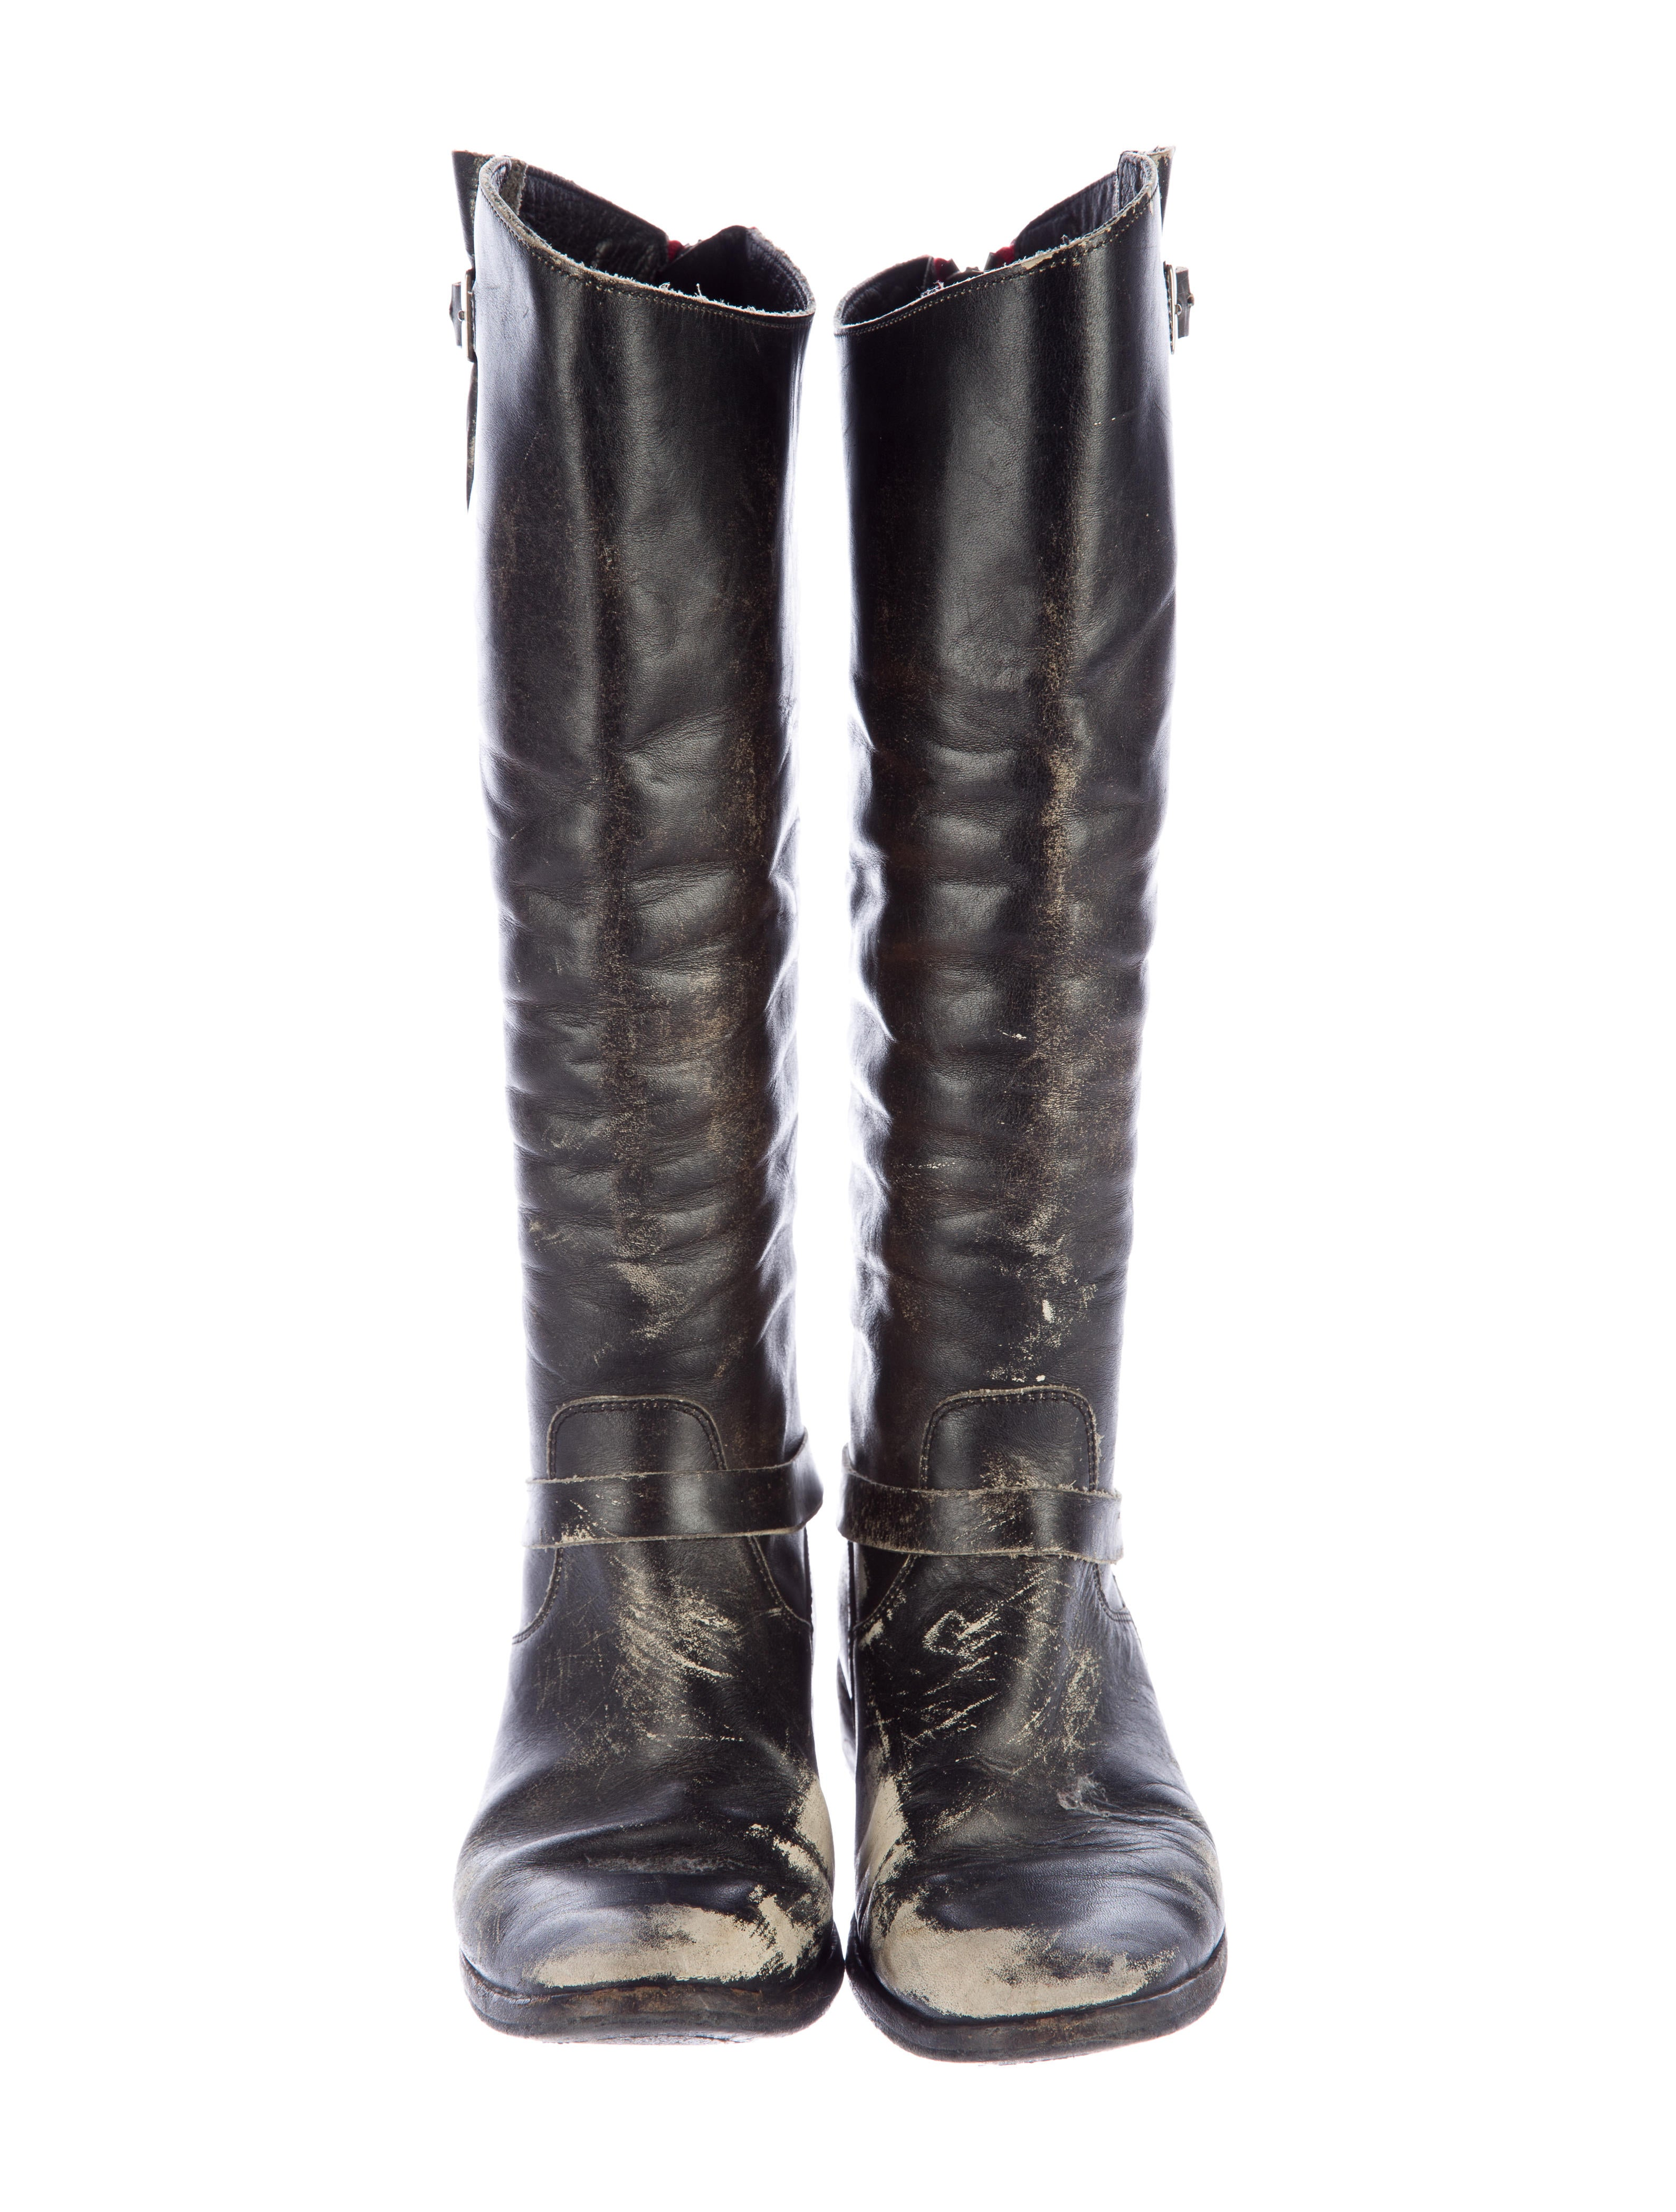 golden goose distressed leather boots shoes wg523367